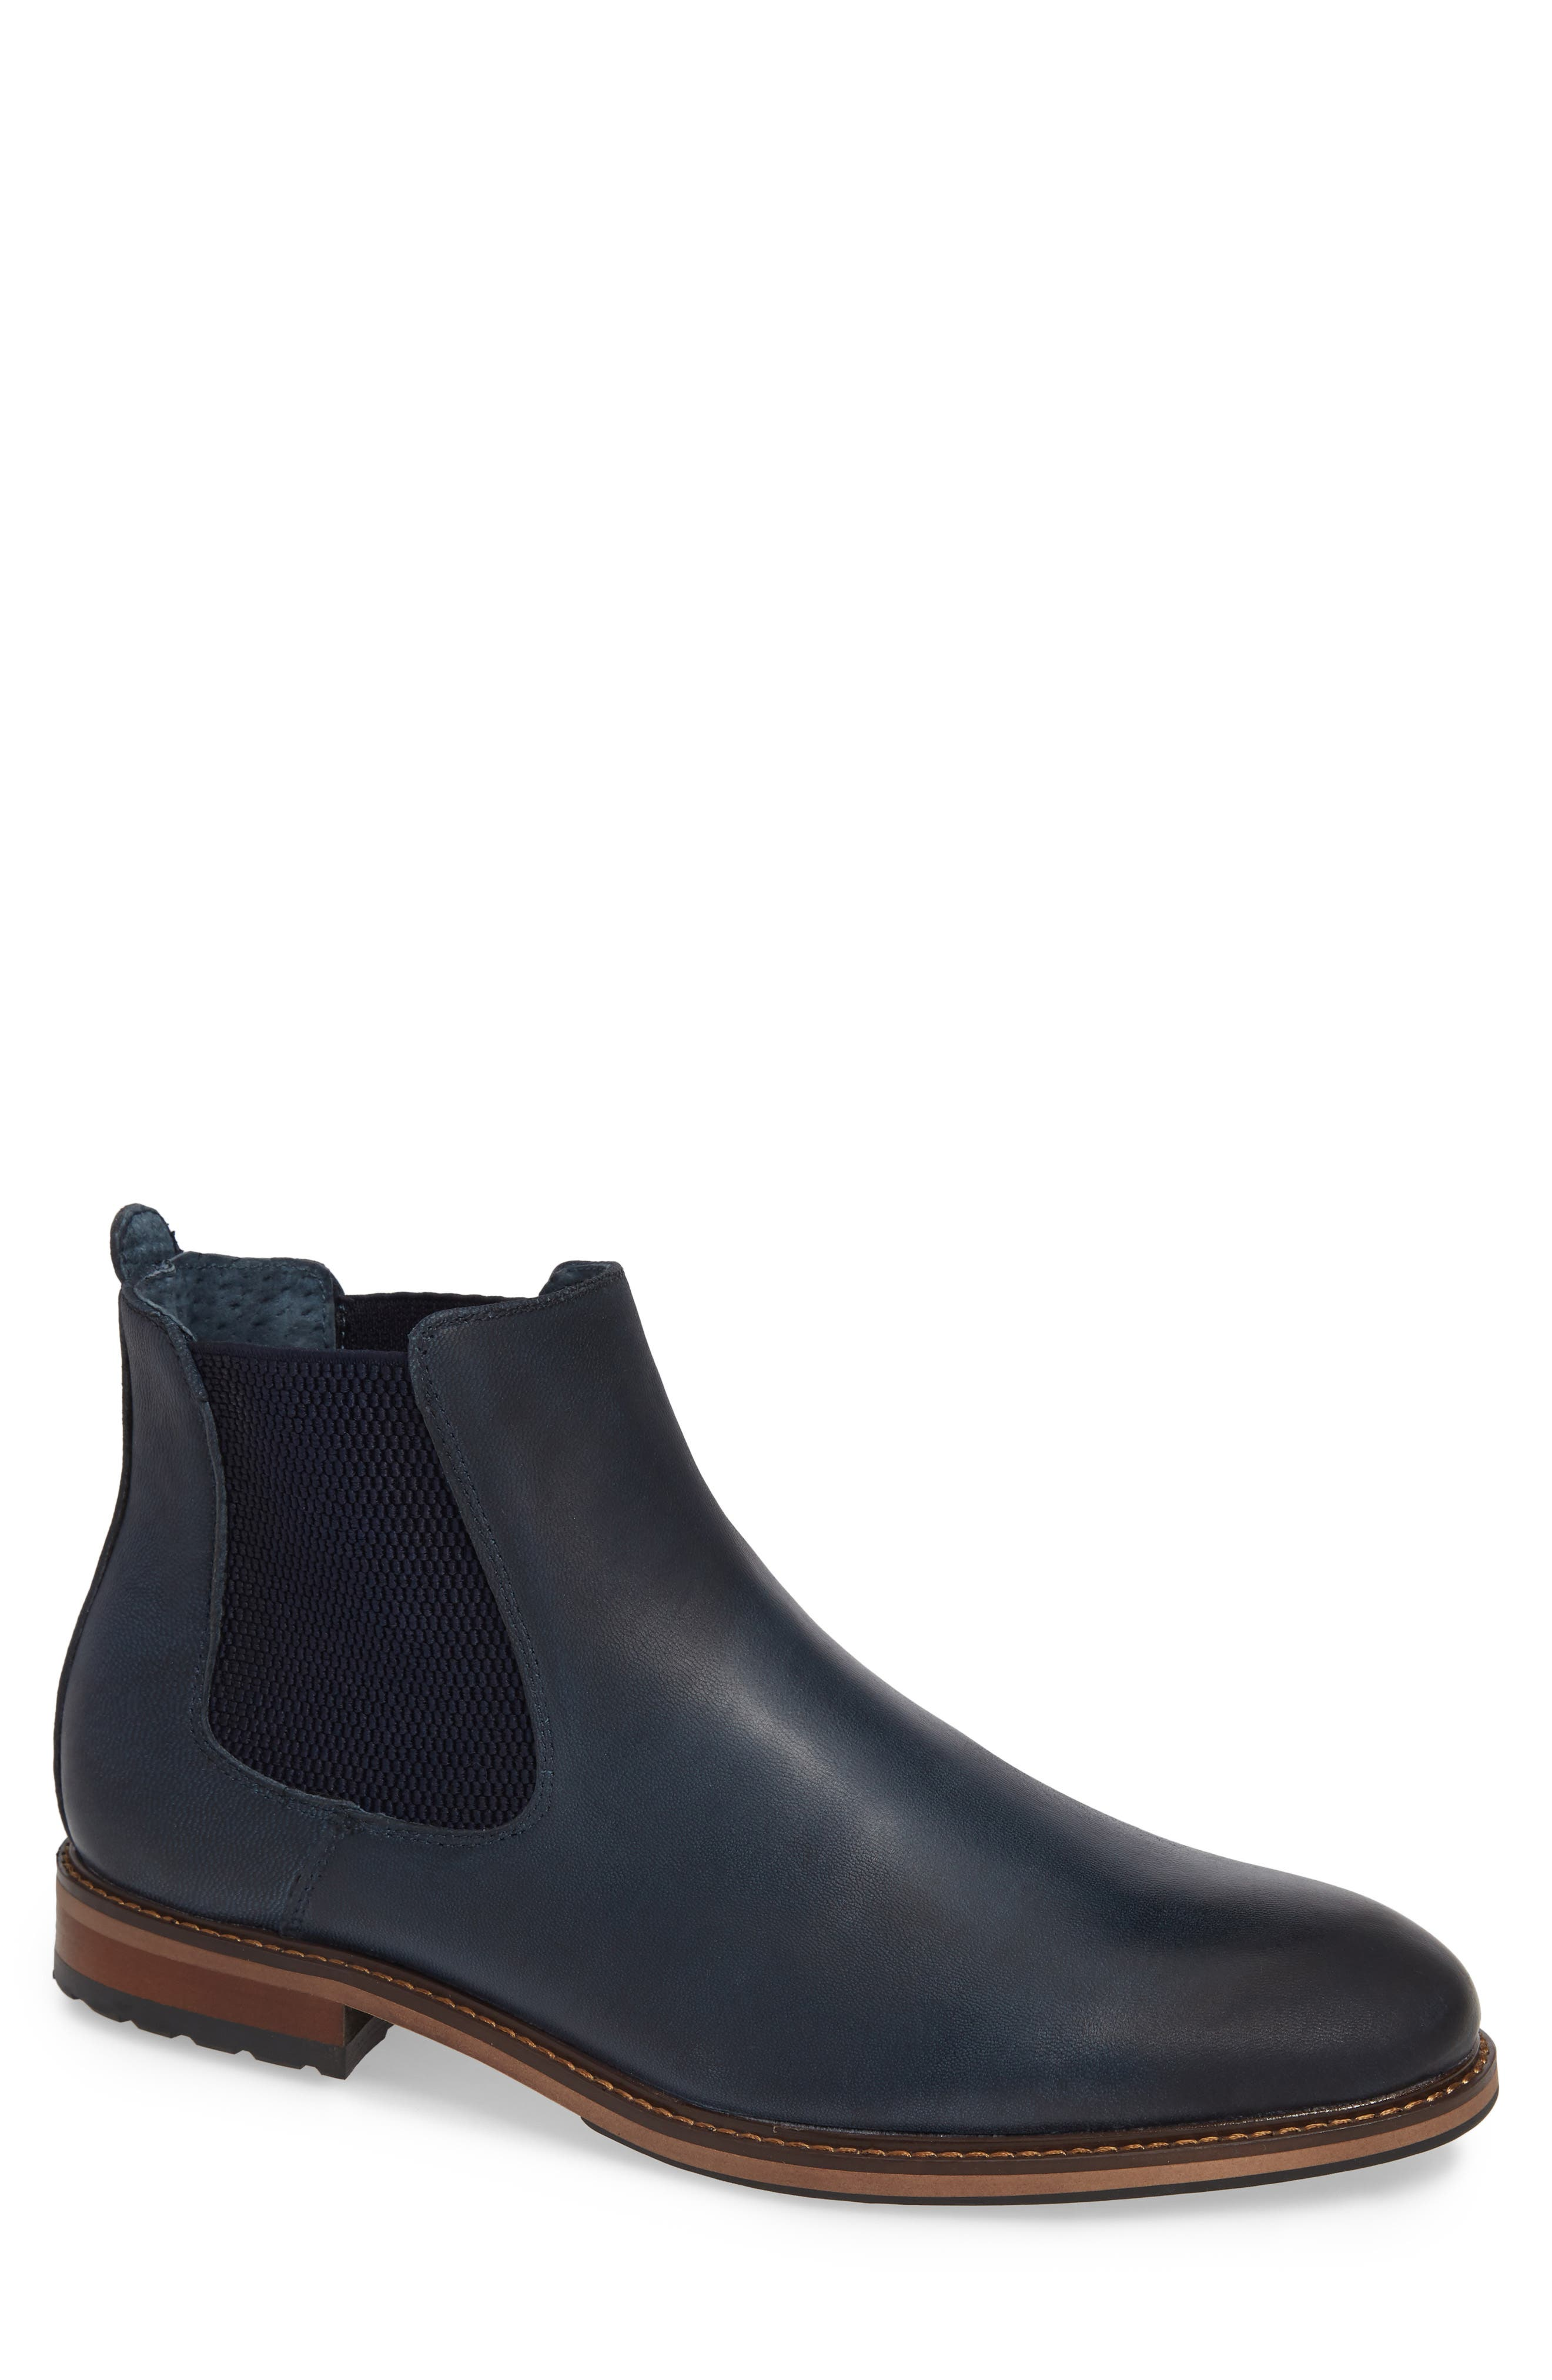 JUMP Steyer Chelsea Boot, Main, color, NAVY